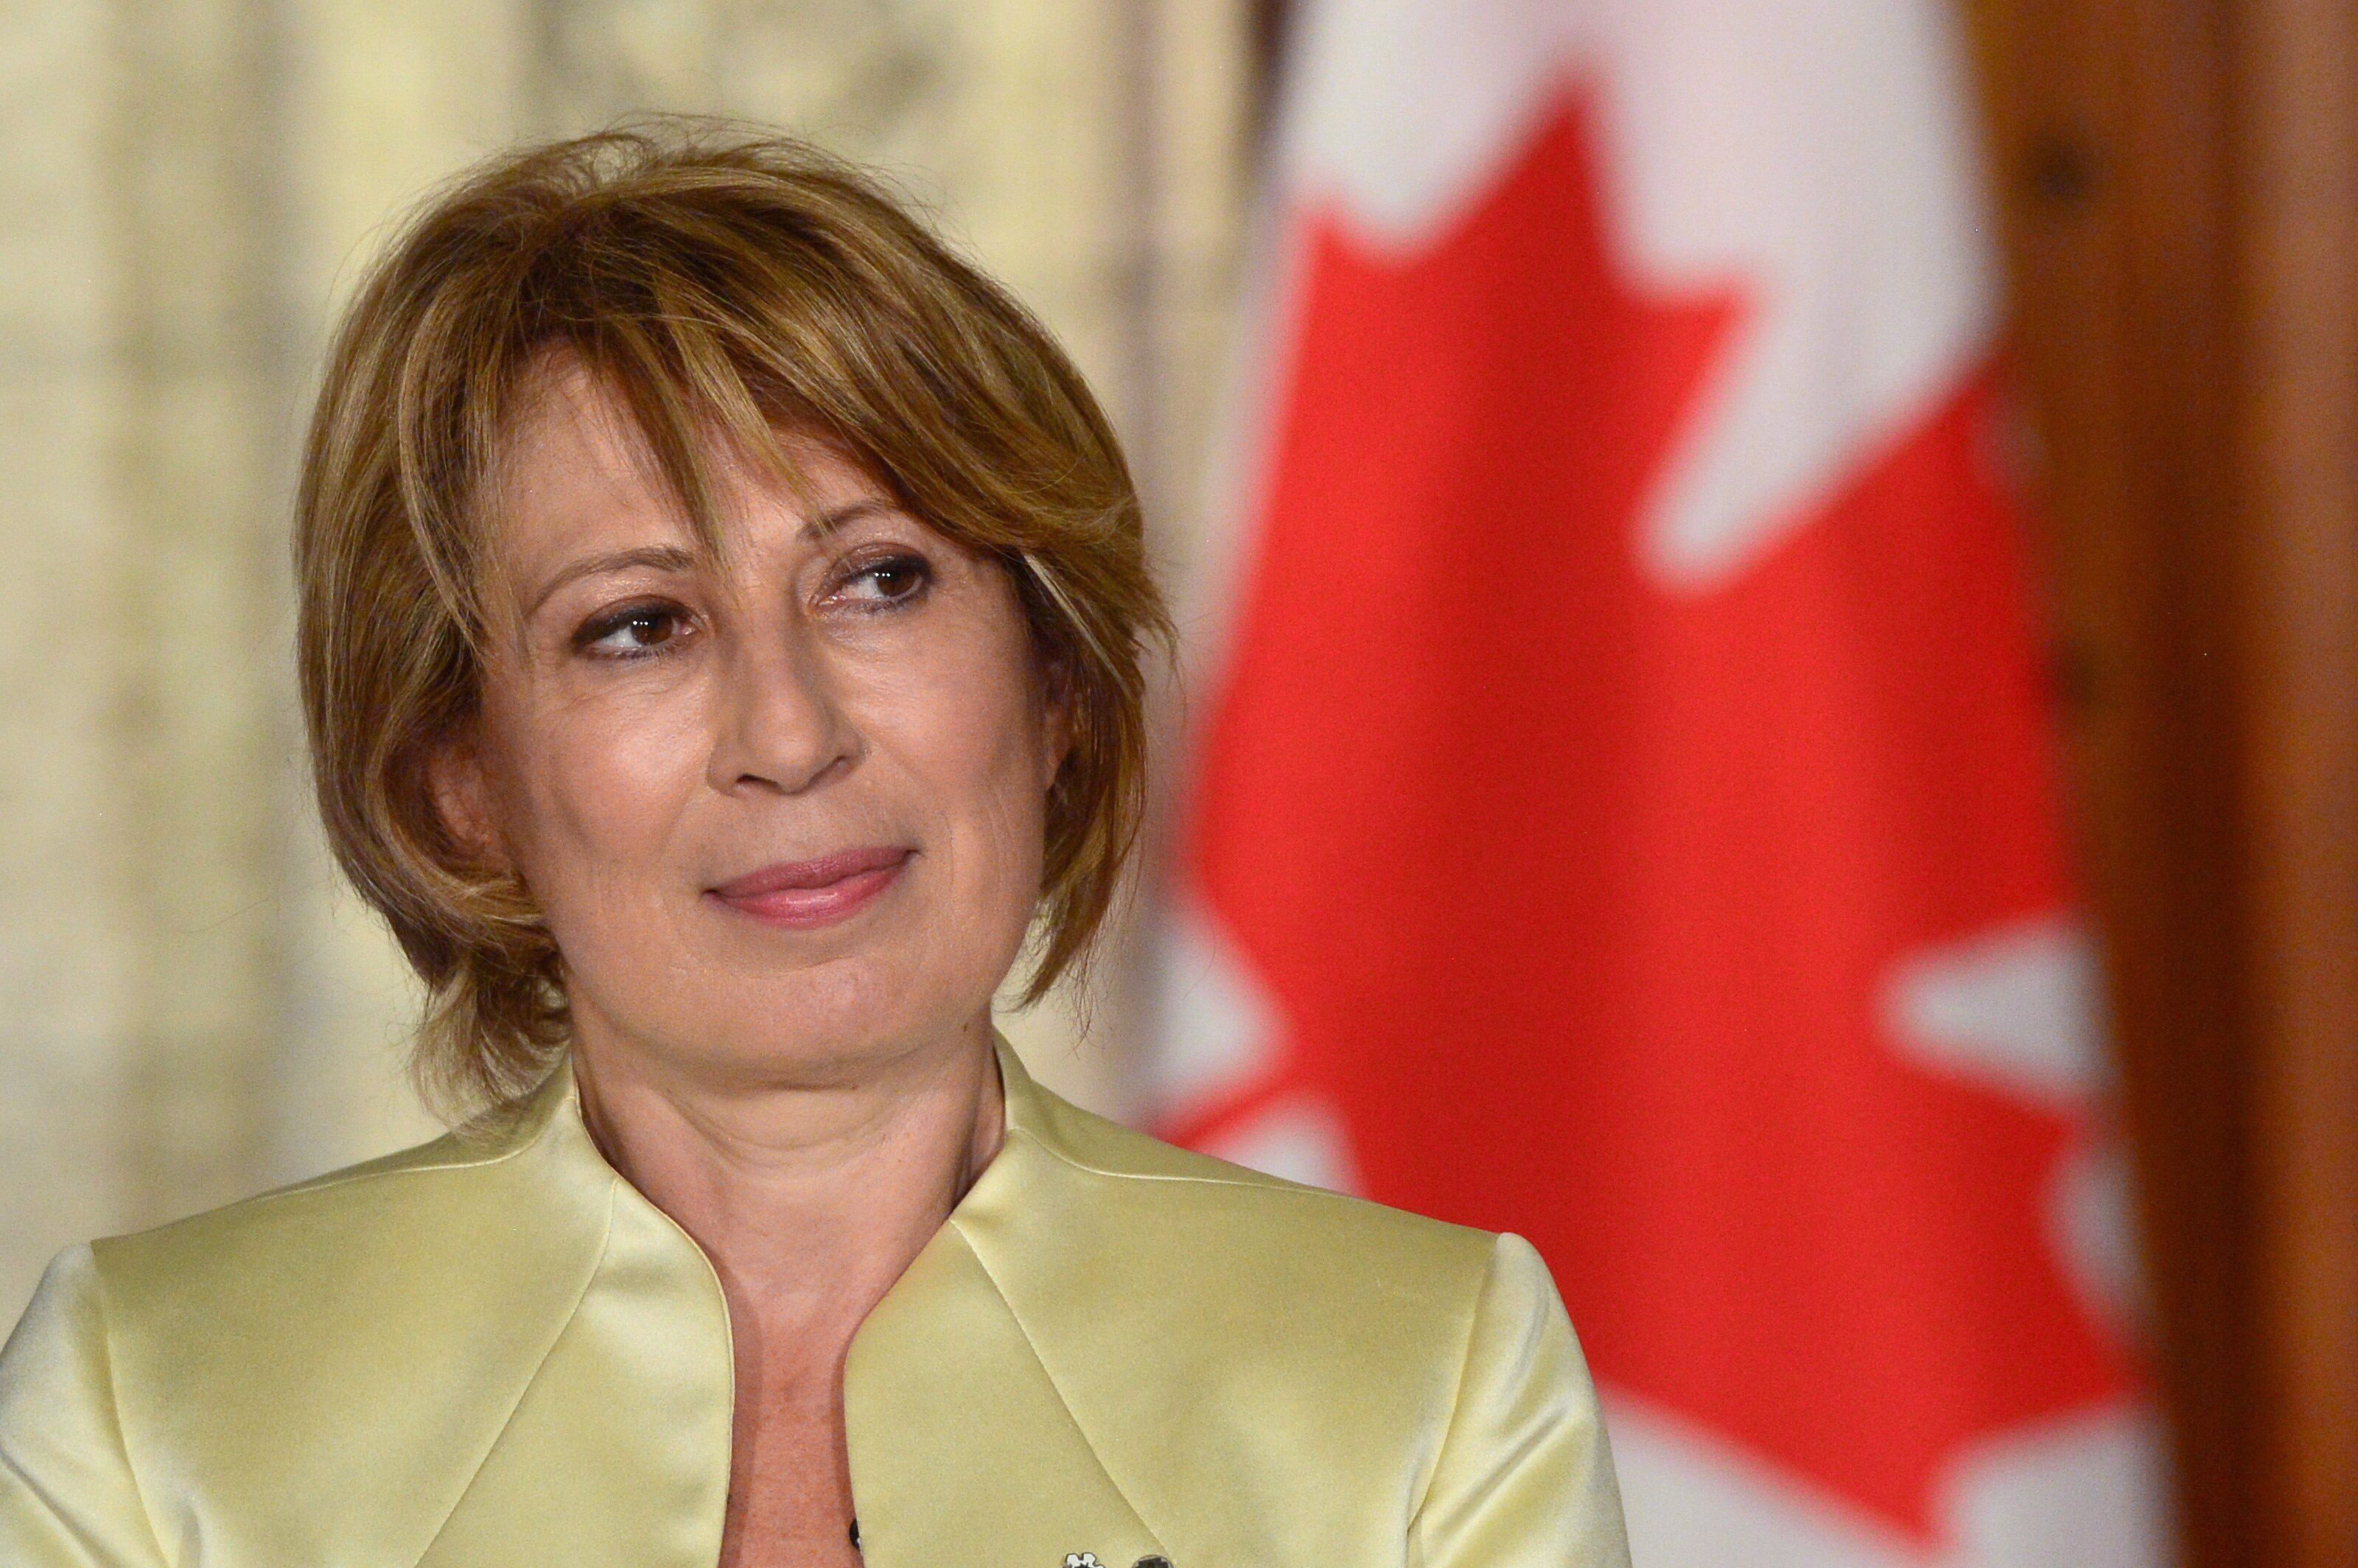 Dr. Mona Nemer was appointed as Canada's chief science adviser in September. (THE CANADIAN PRESS/Sean Kilpatrick)